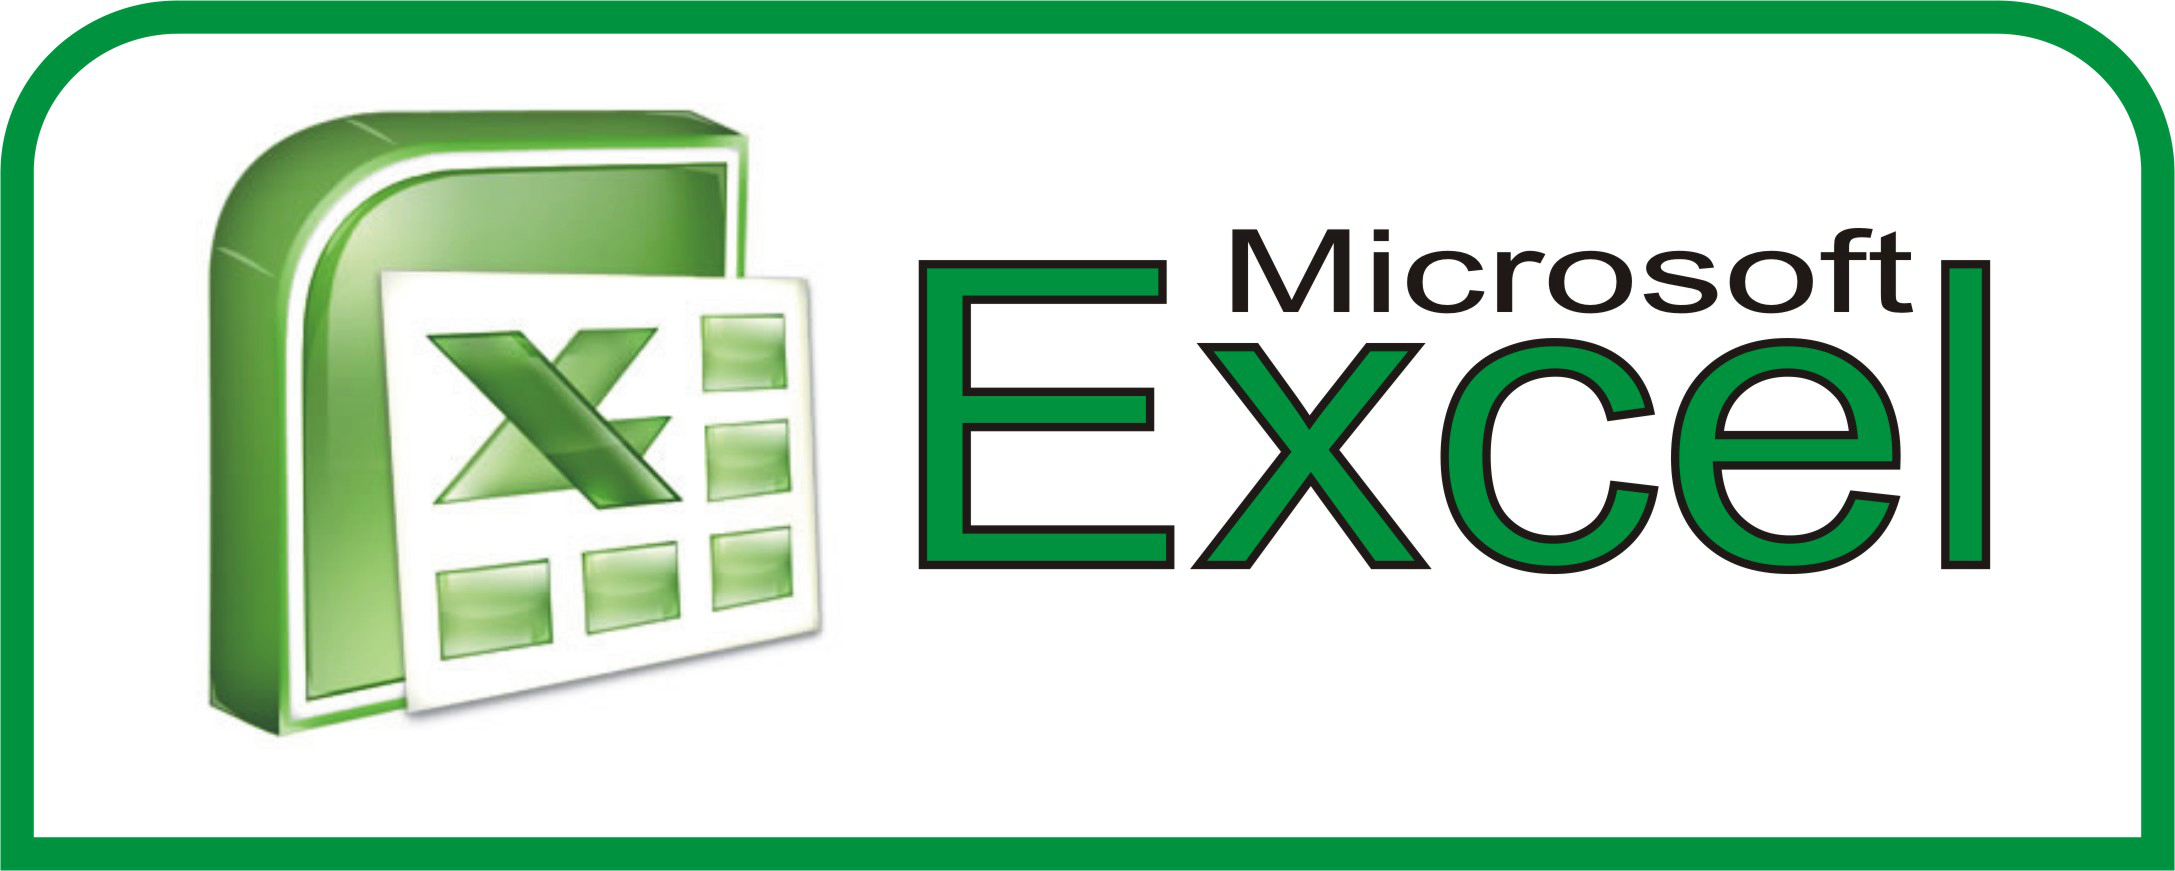 Ediblewildsus  Pleasant  Excel Shortcuts You Probably Didnt Know About  Techdissected With Fascinating Blank Excel Spreadsheet Besides How To Combine Names In Excel Furthermore Rows And Columns In Excel With Enchanting Microsoft Excel Tutorial  Also Averages In Excel In Addition Download Excel For Free And Power Pivot Excel As Well As Highlighting Duplicates In Excel Additionally Separate Columns In Excel From Techdissectedcom With Ediblewildsus  Fascinating  Excel Shortcuts You Probably Didnt Know About  Techdissected With Enchanting Blank Excel Spreadsheet Besides How To Combine Names In Excel Furthermore Rows And Columns In Excel And Pleasant Microsoft Excel Tutorial  Also Averages In Excel In Addition Download Excel For Free From Techdissectedcom